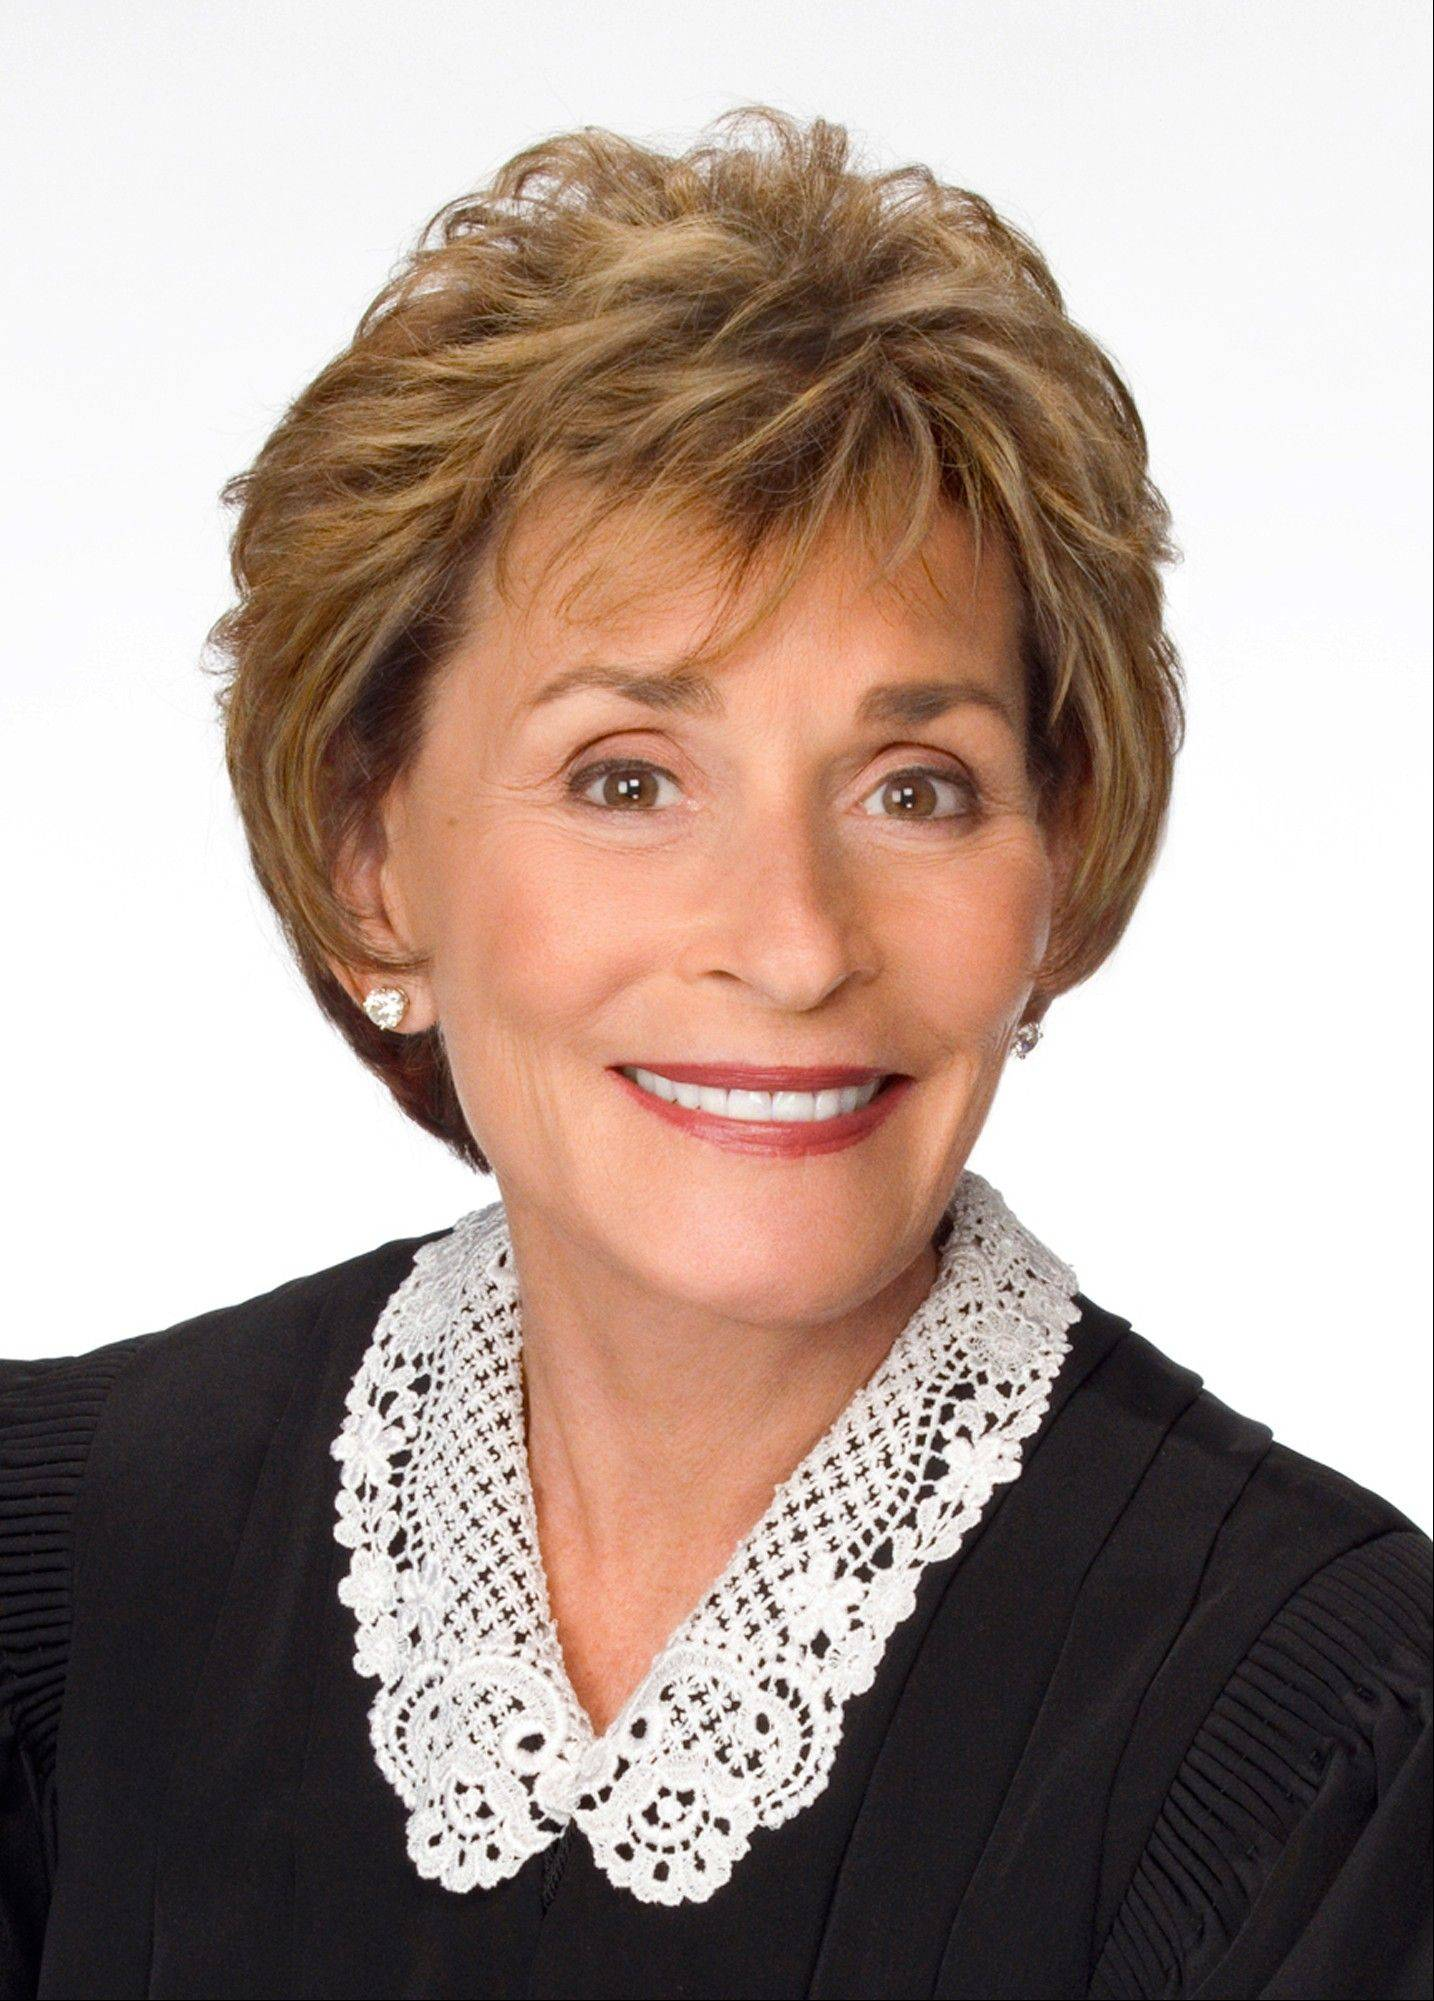 Judge Judy Sheindlin has signed a new multiyear deal to continue presiding over her top-rated show, �Judge Judy,� through 2017.